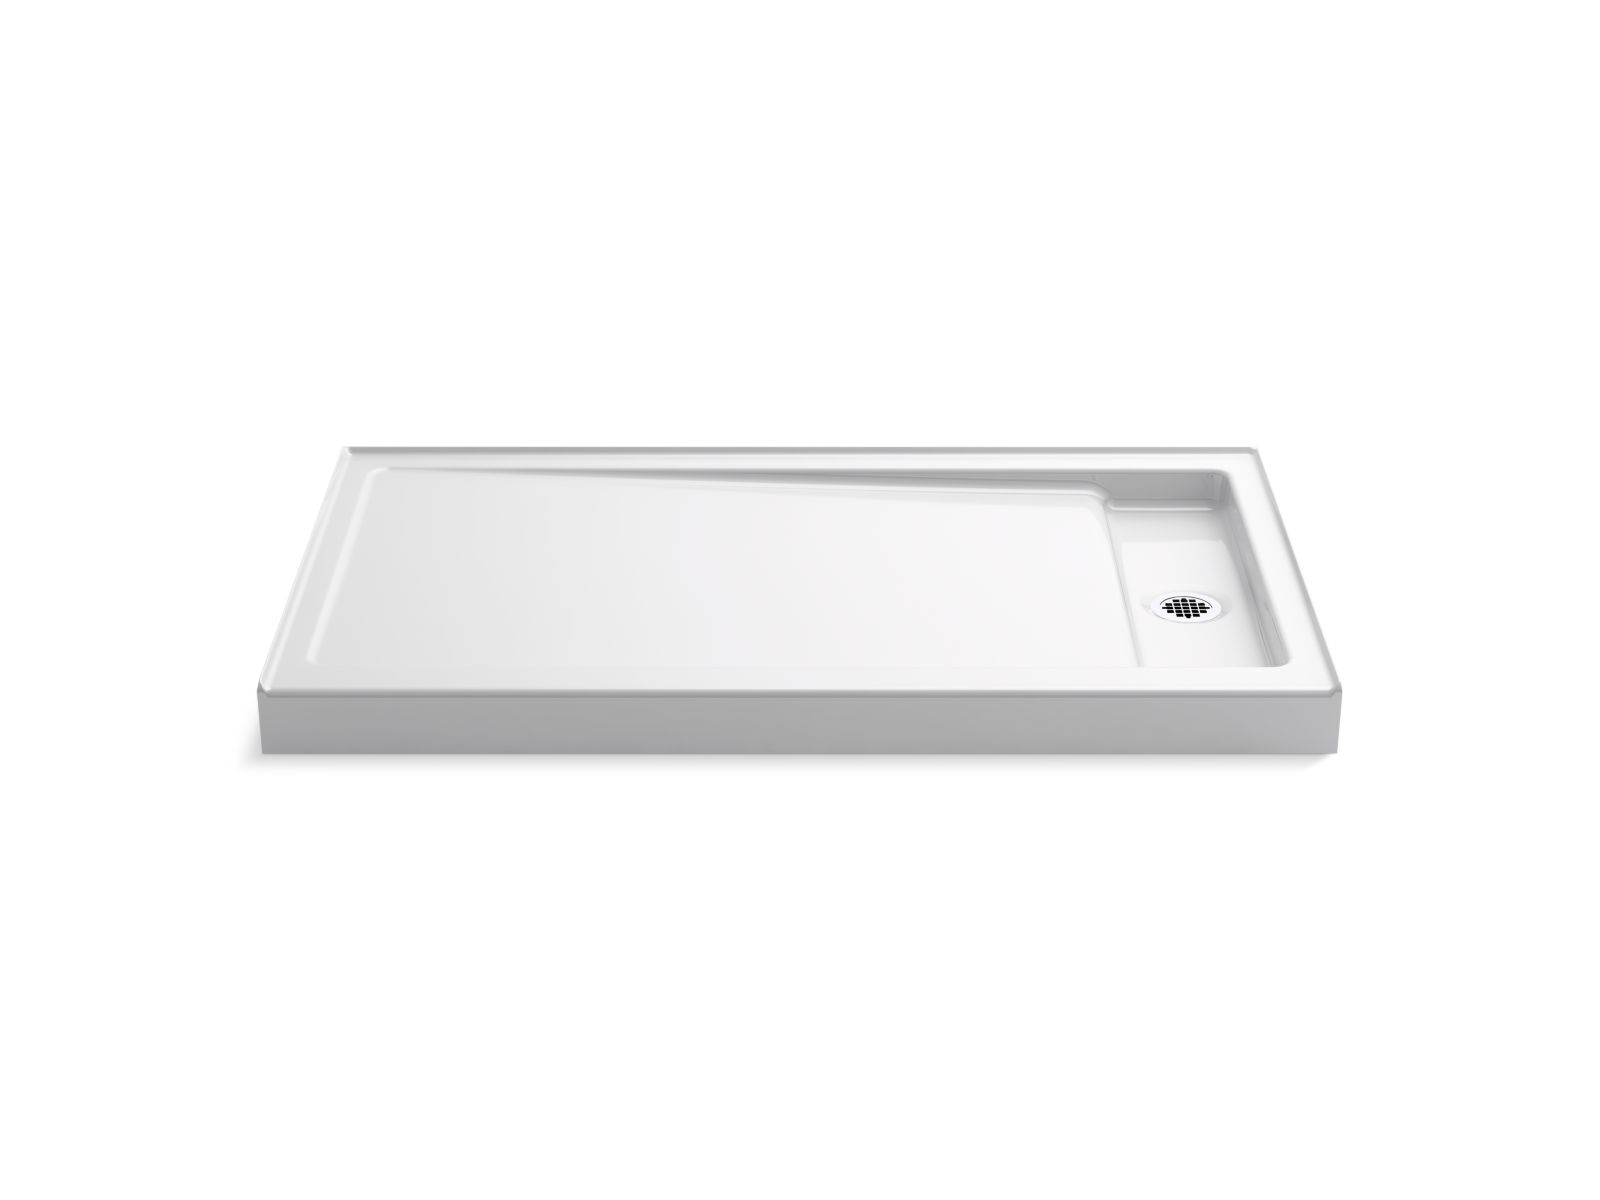 "Kohler Bellwether® K-9178-0 60"" x 34"" single-threshold shower base with right center drain White"